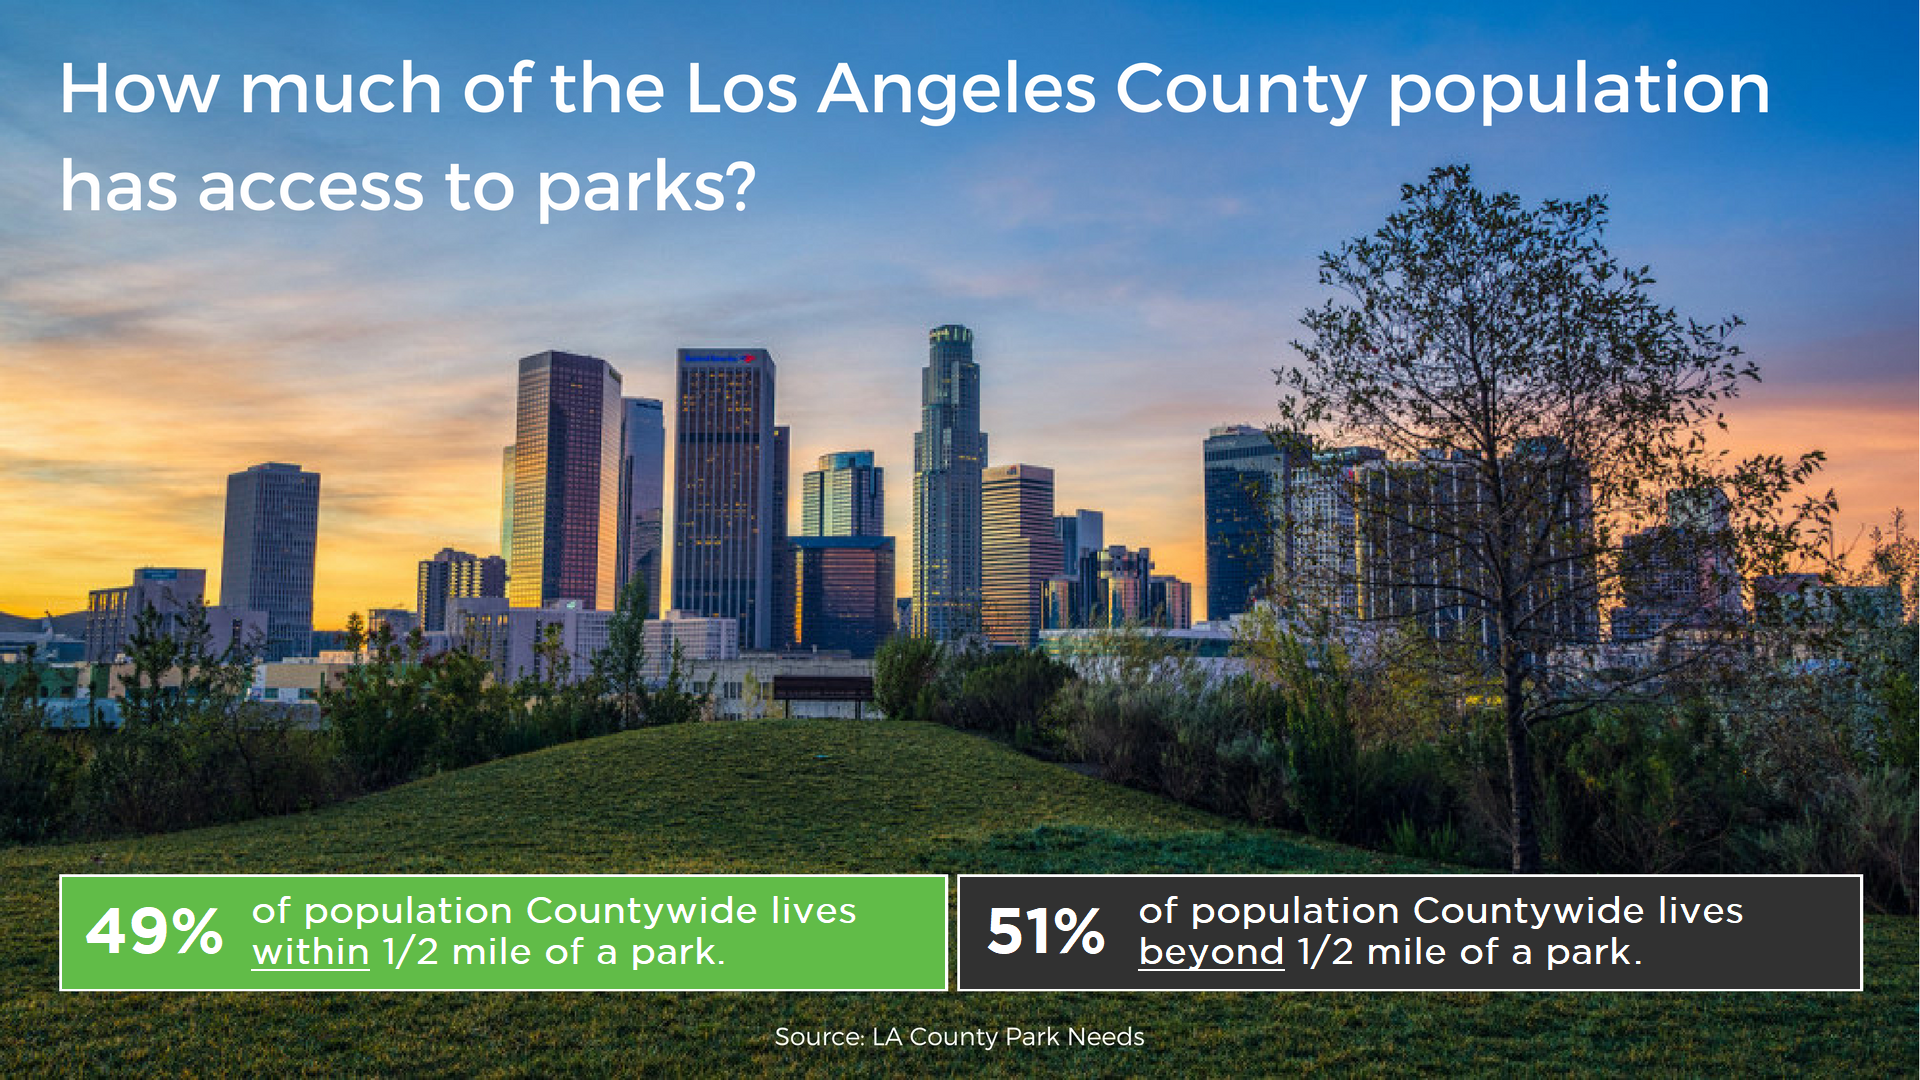 Countywide Access to Parks